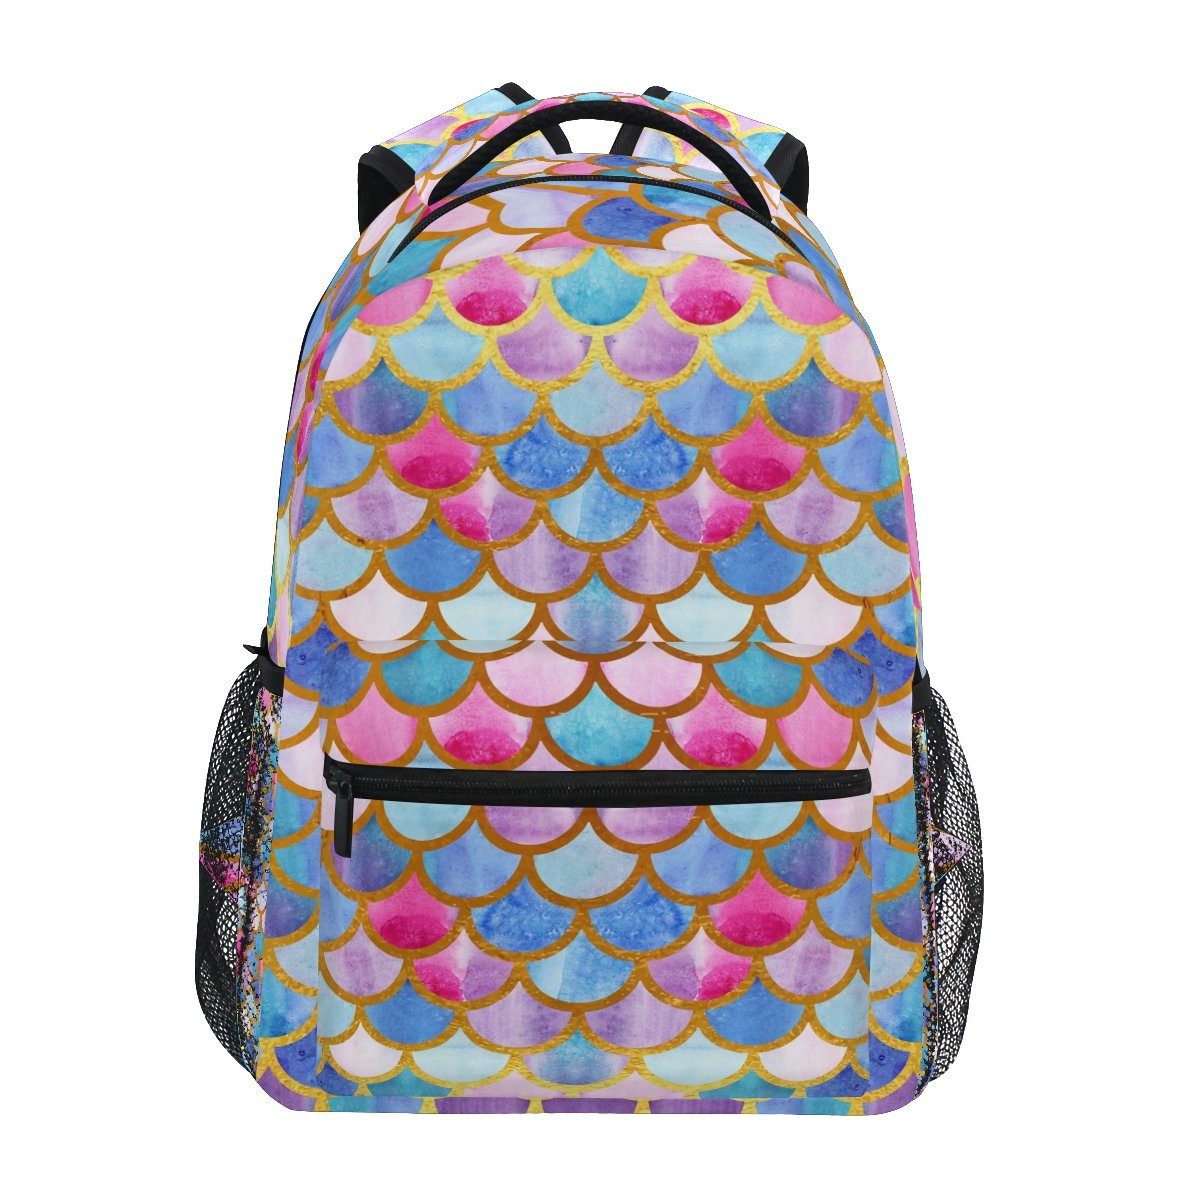 ZZKKO Colorful Mermaid Scale Boys Girls School Computer Backpacks Book Bag Travel Hiking Camping Daypack by ZZKKO